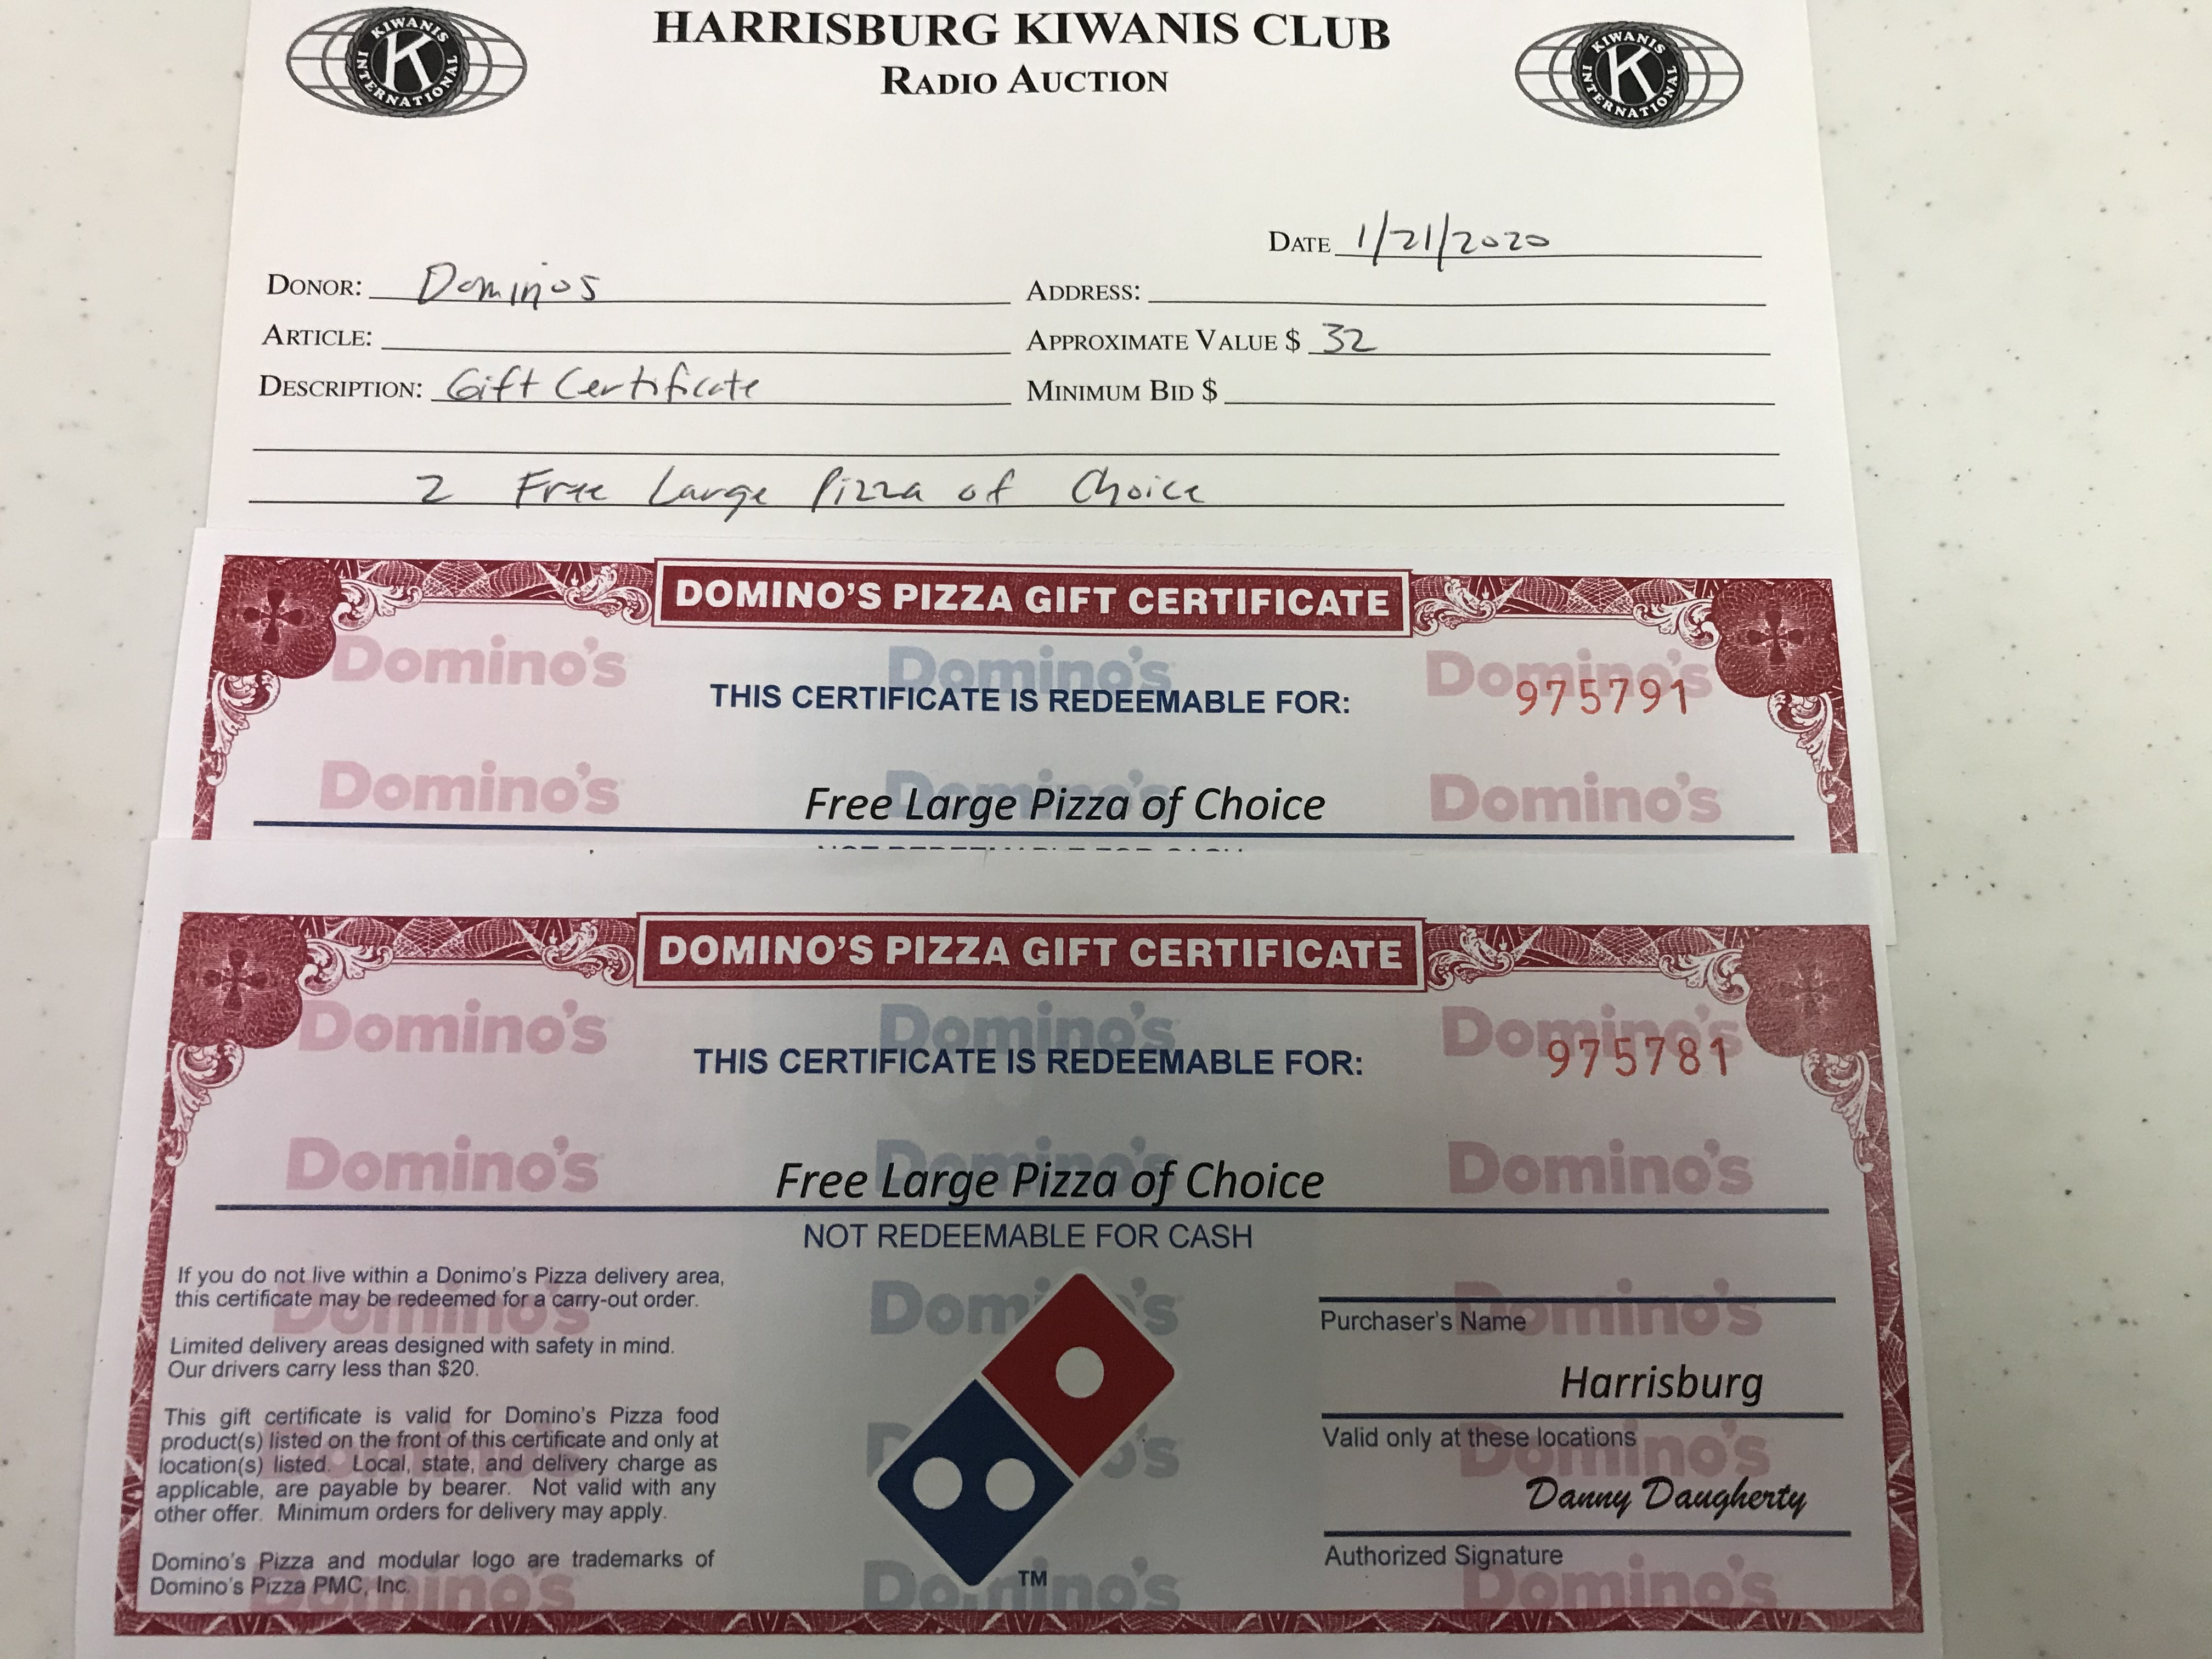 Item 230 - Dominos 2 Free Large Pizza of Choice